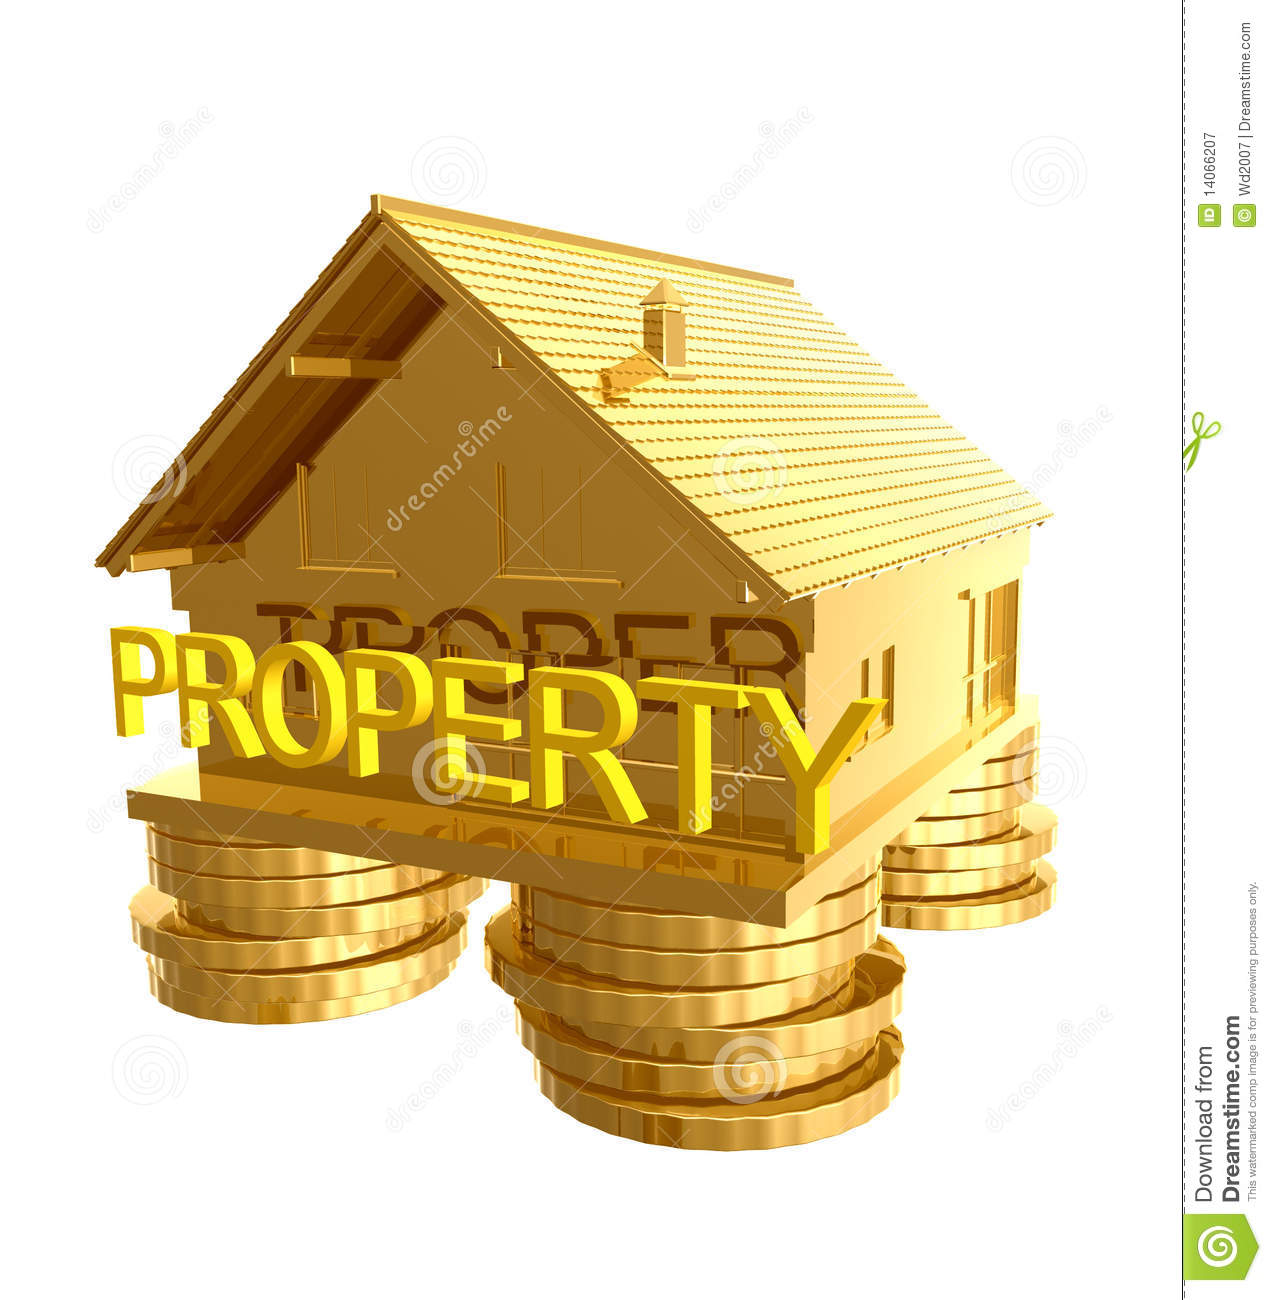 http://thumbs.dreamstime.com/z/house-investment-icon-symbol-14066207.jpg